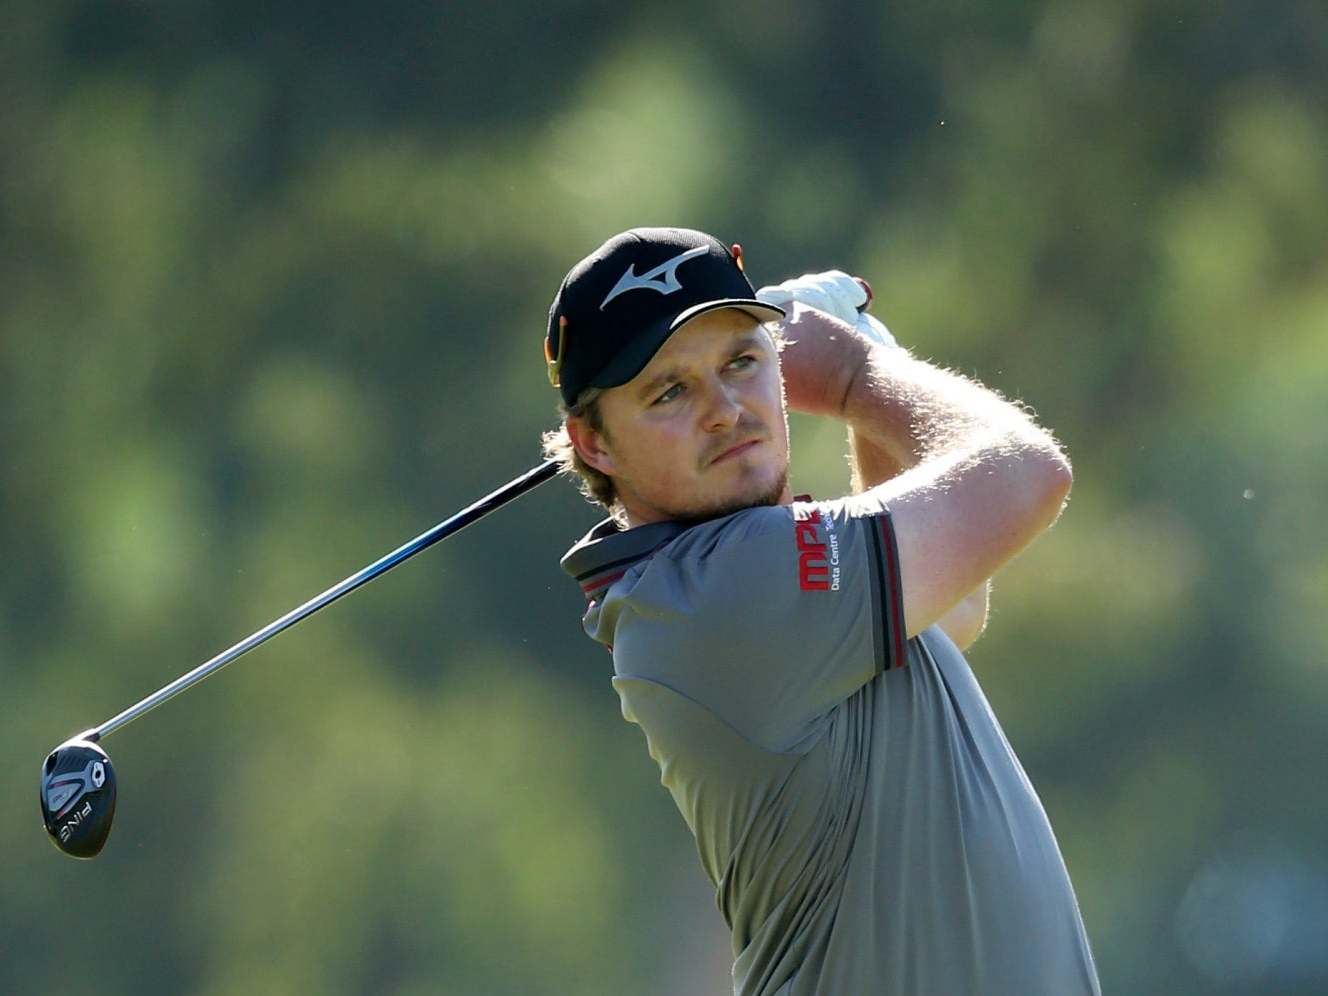 Eddie Pepperell disqualified from Turkish Airlines Open after running out of balls